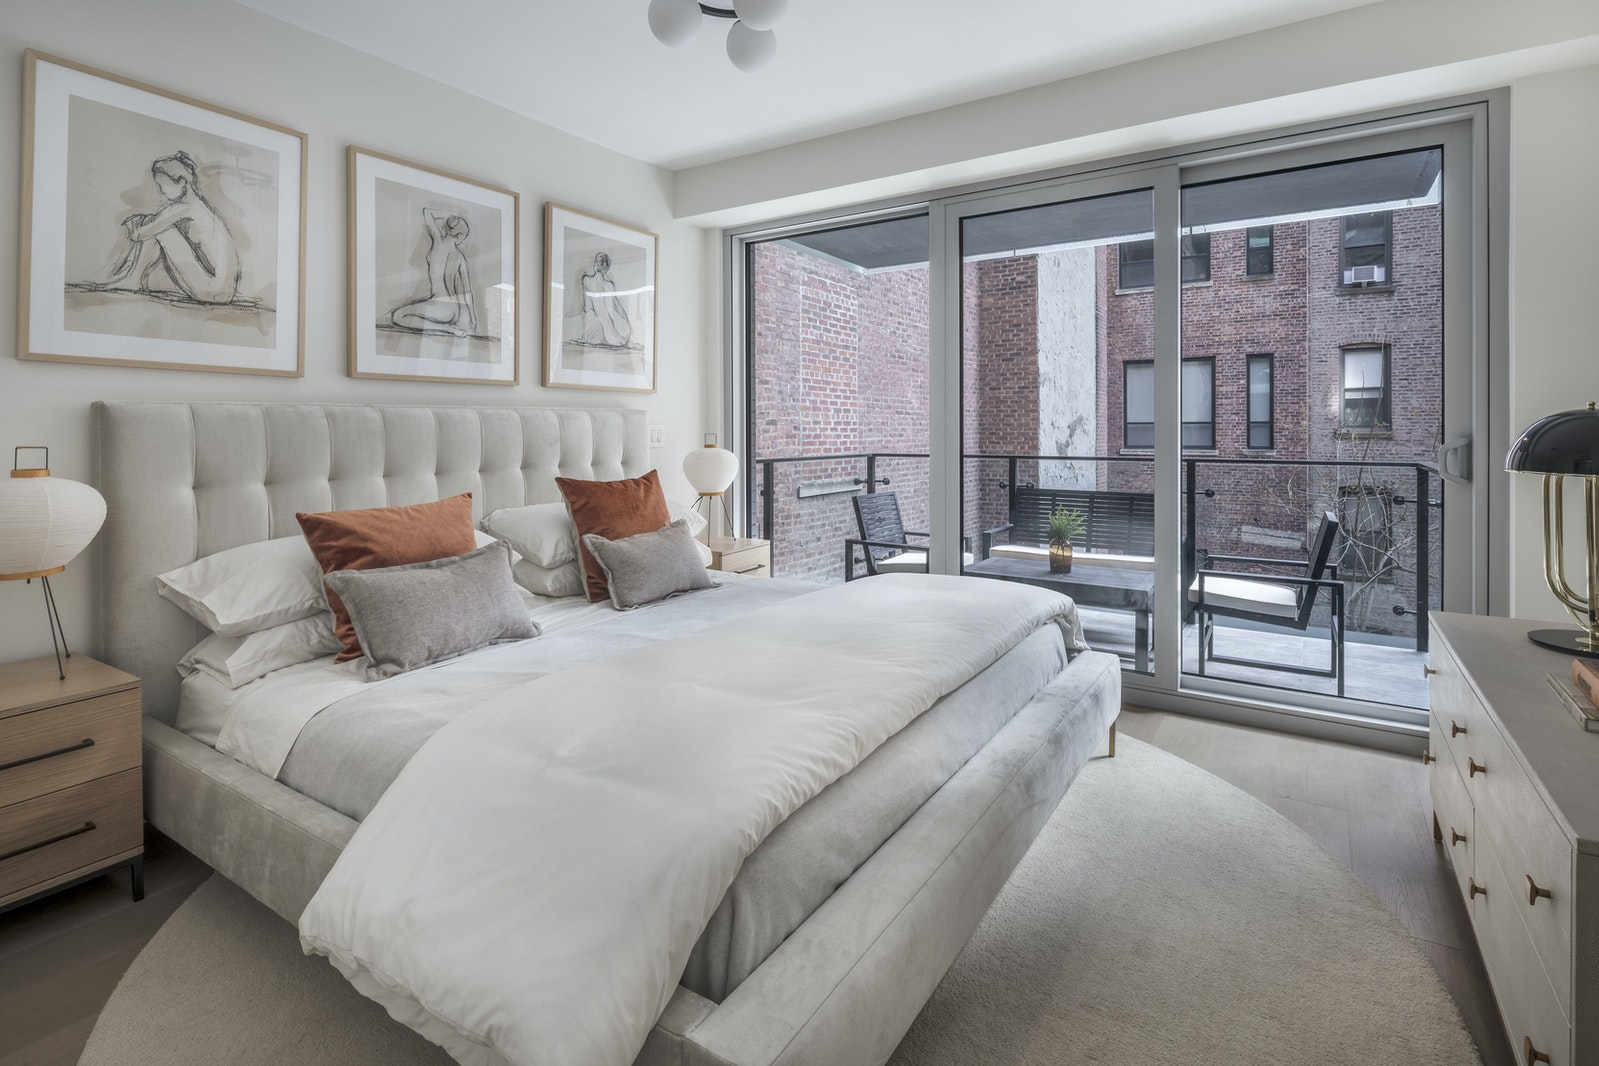 424 West 52nd Street 3, Midtown West, NYC, $2,195,000, Web #: 20195530